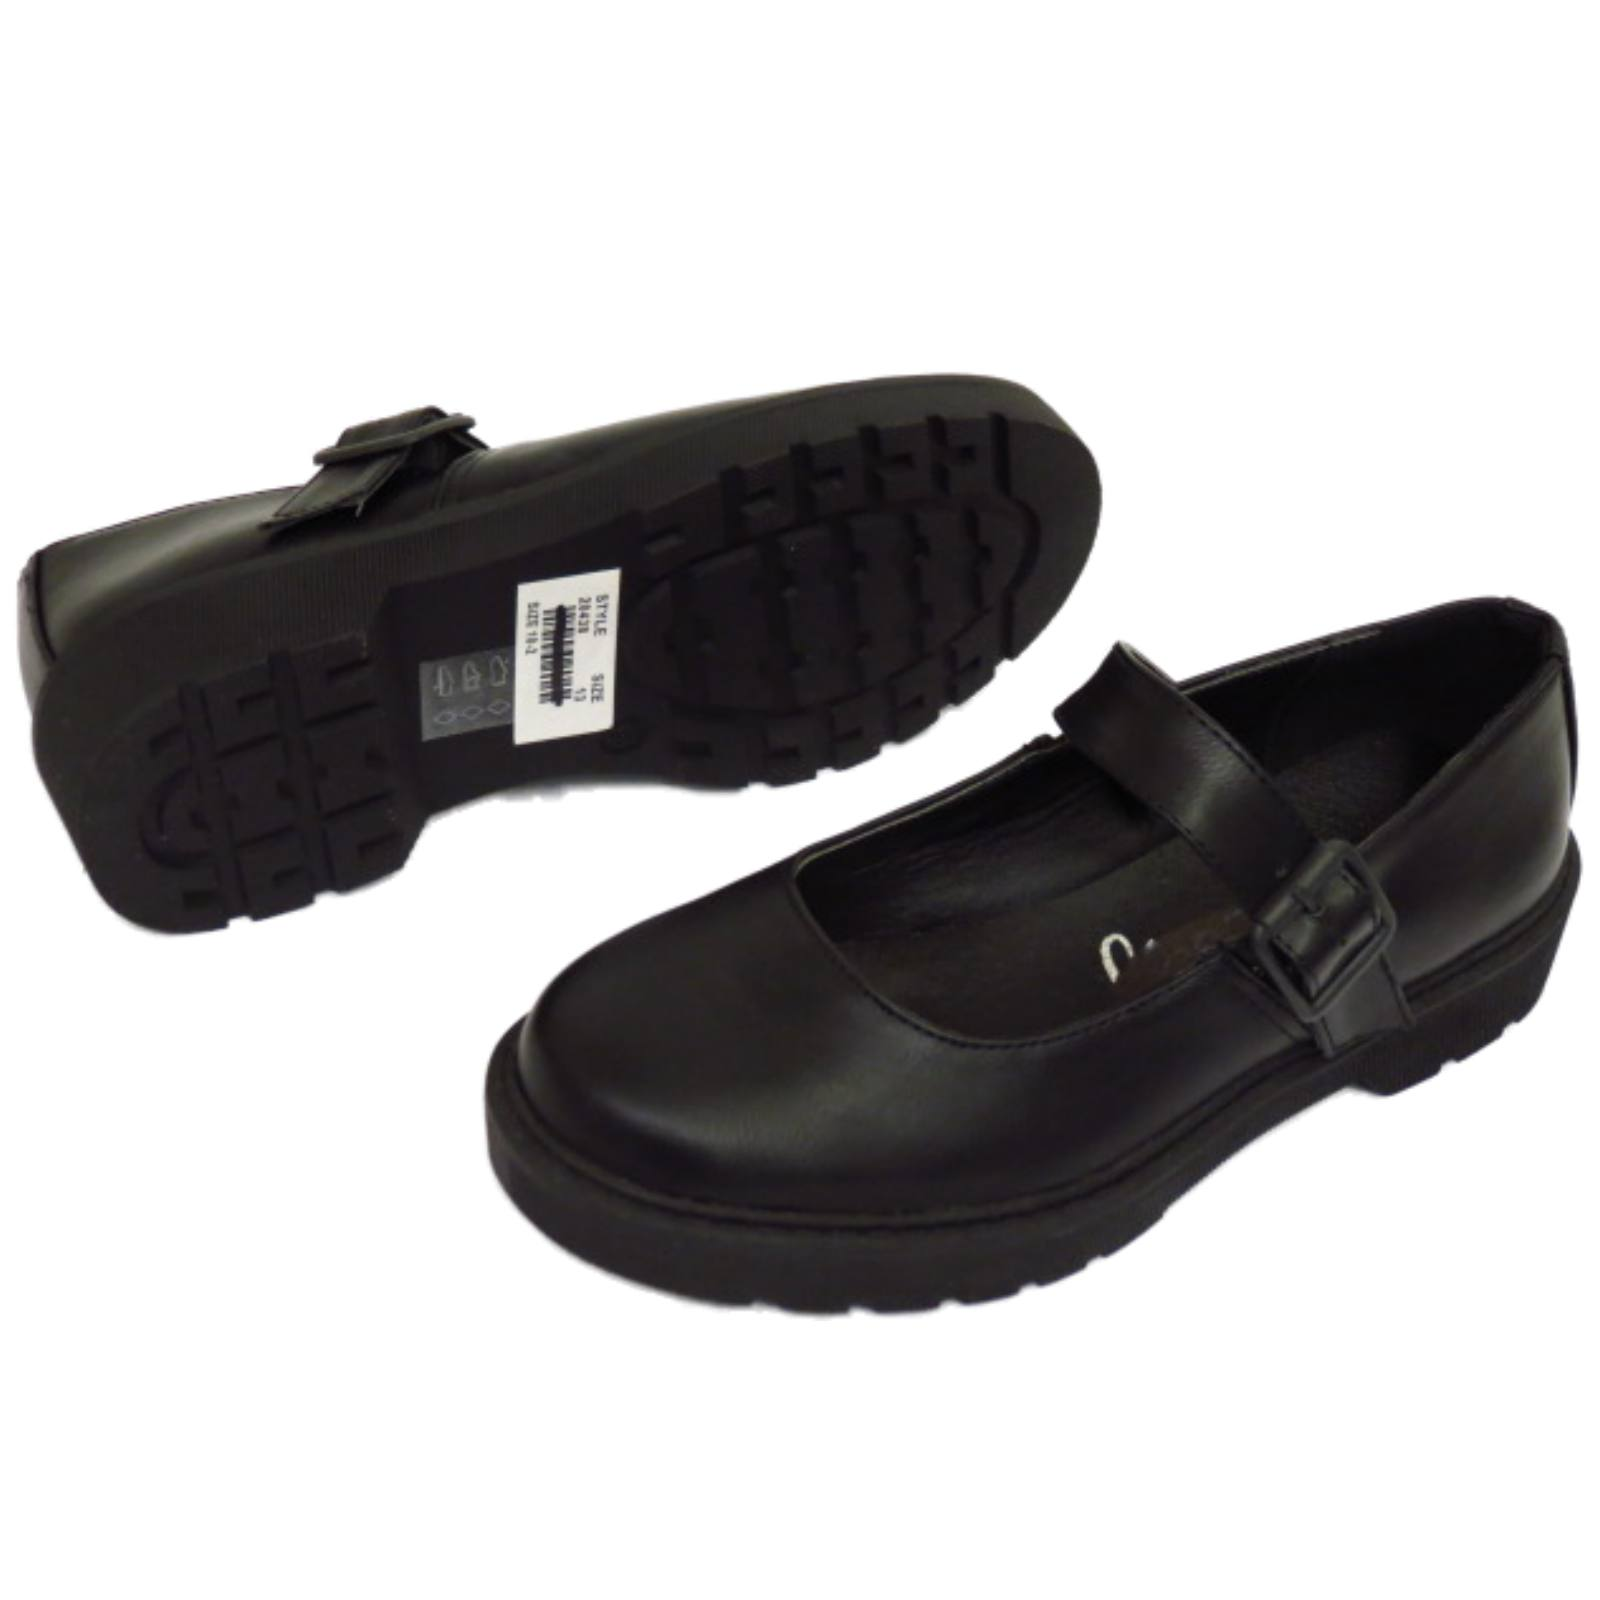 GIRLS-KIDS-CHILDRENS-BUCKLE-T-BAR-BLACK-SCHOOL-PUMPS-DOLLY-SMART-FLAT-SHOES-10-5 thumbnail 42